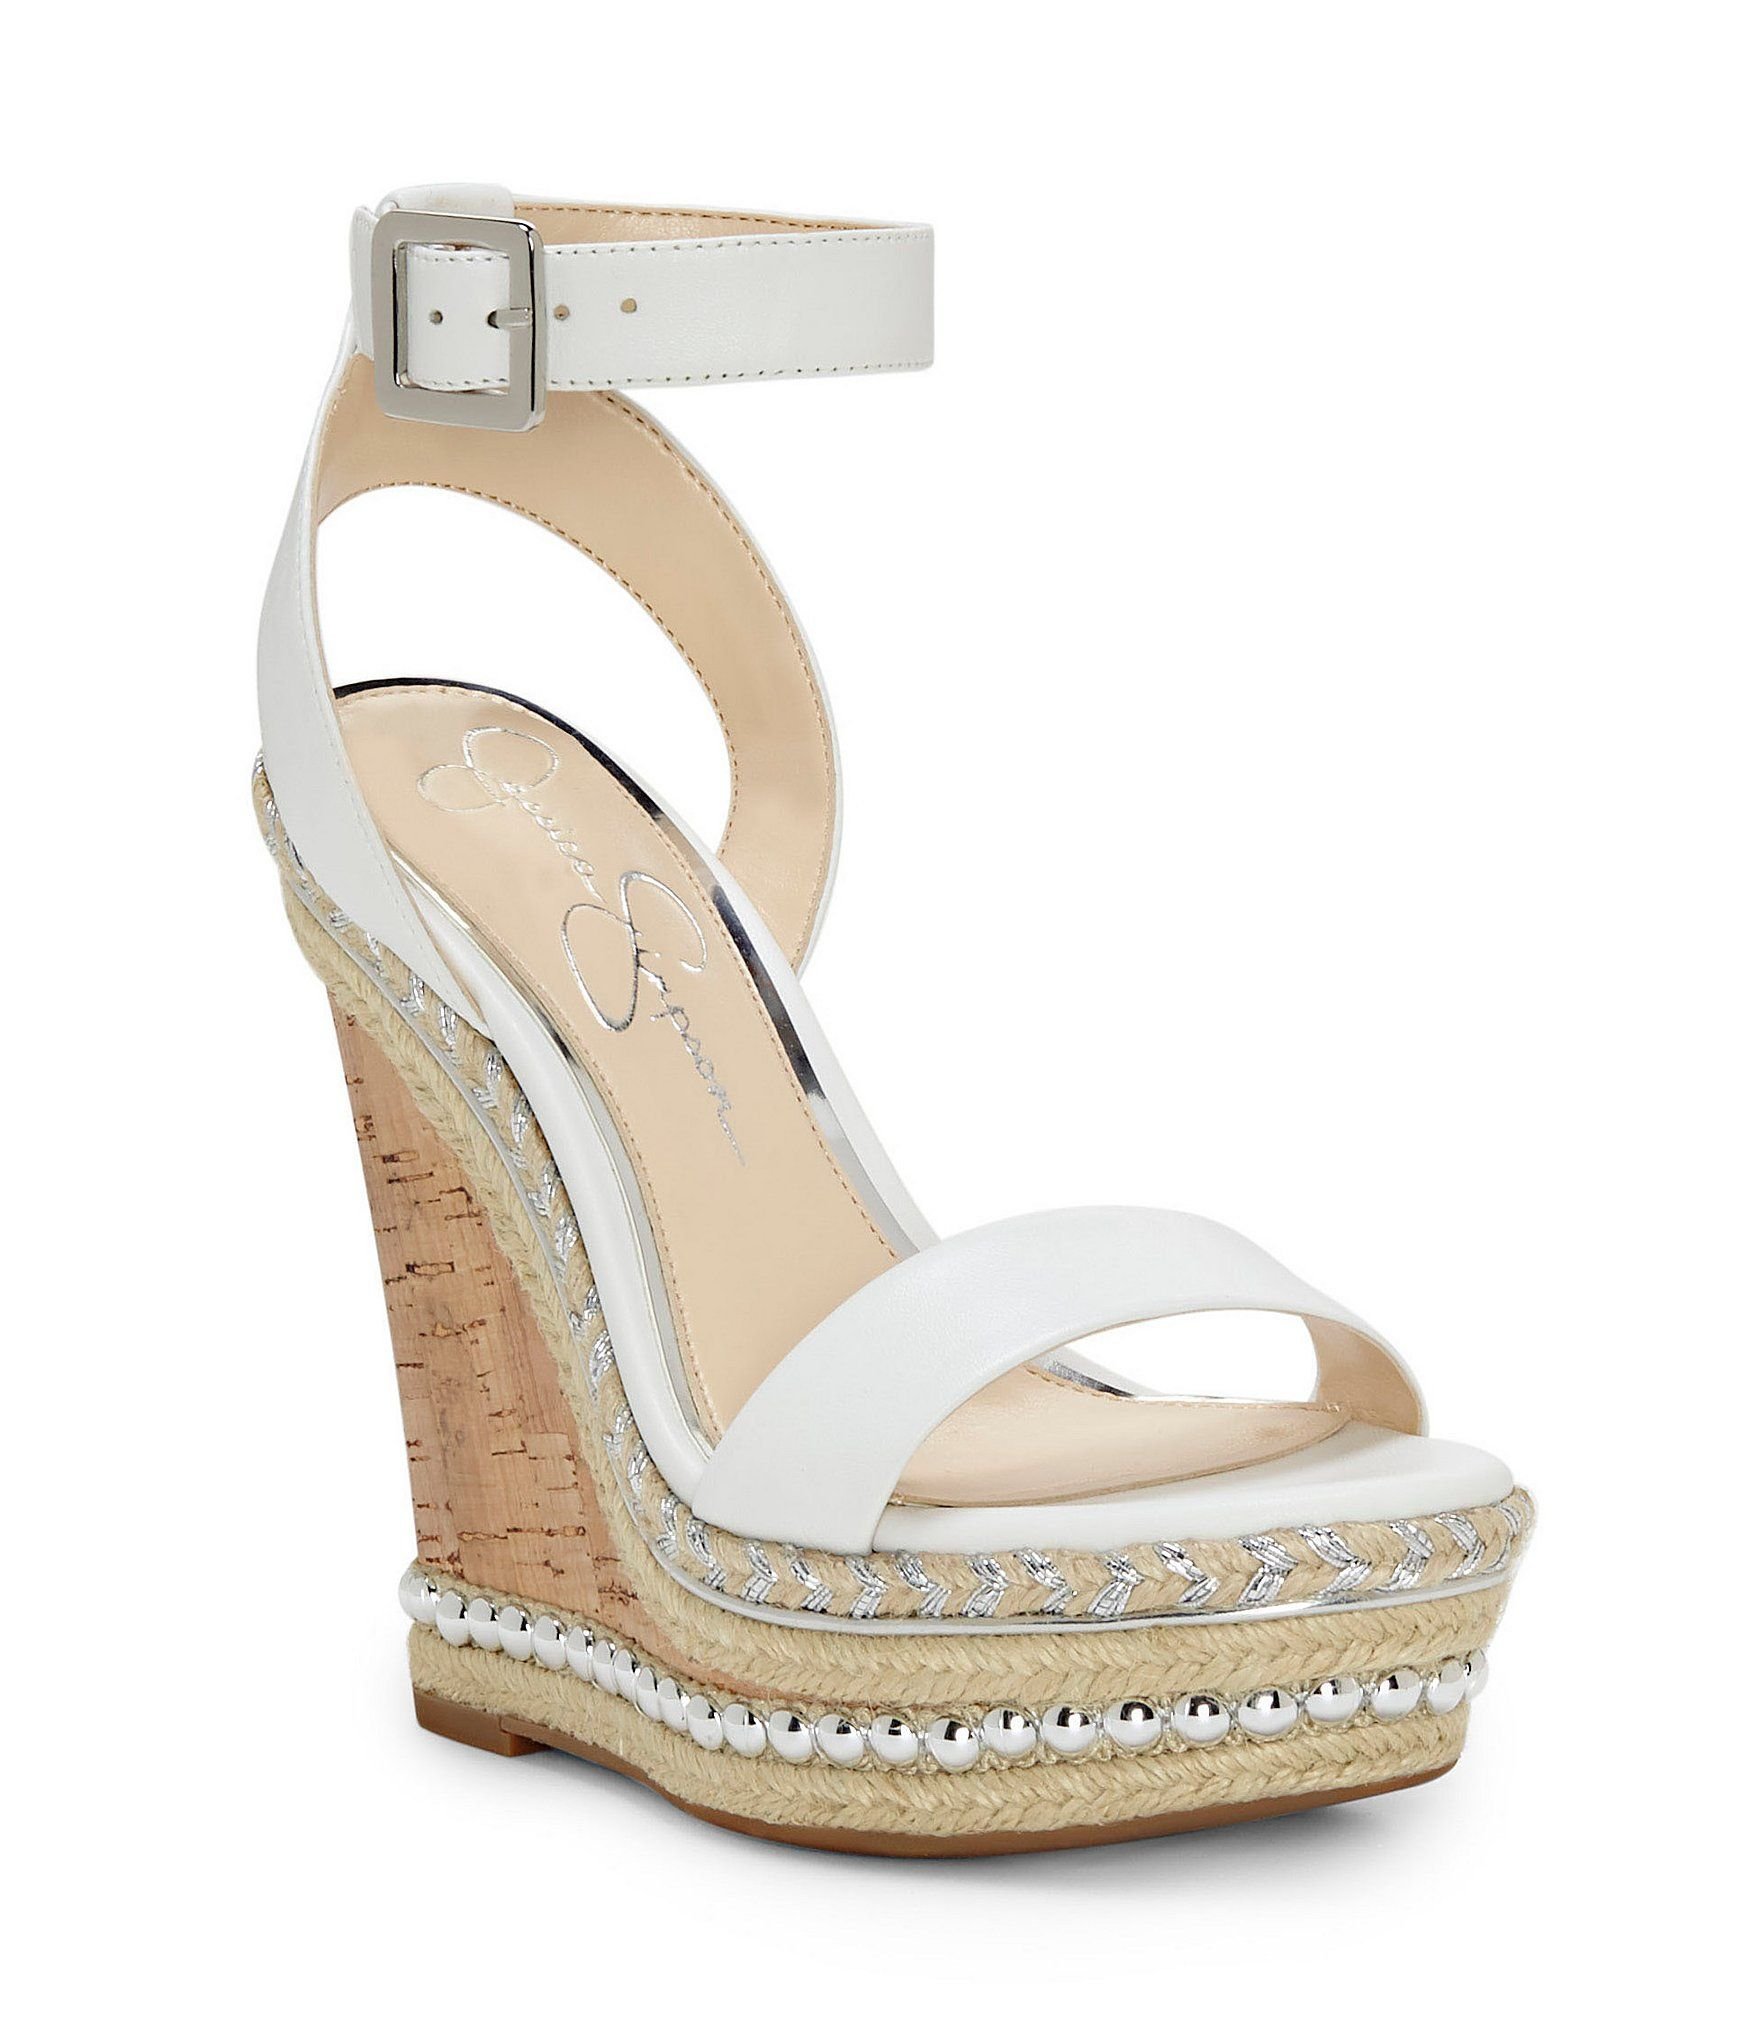 51d70a4ae3 Jessica Simpson Avey Stud and Braided Detail Platform Wedge Sandals  #Dillards